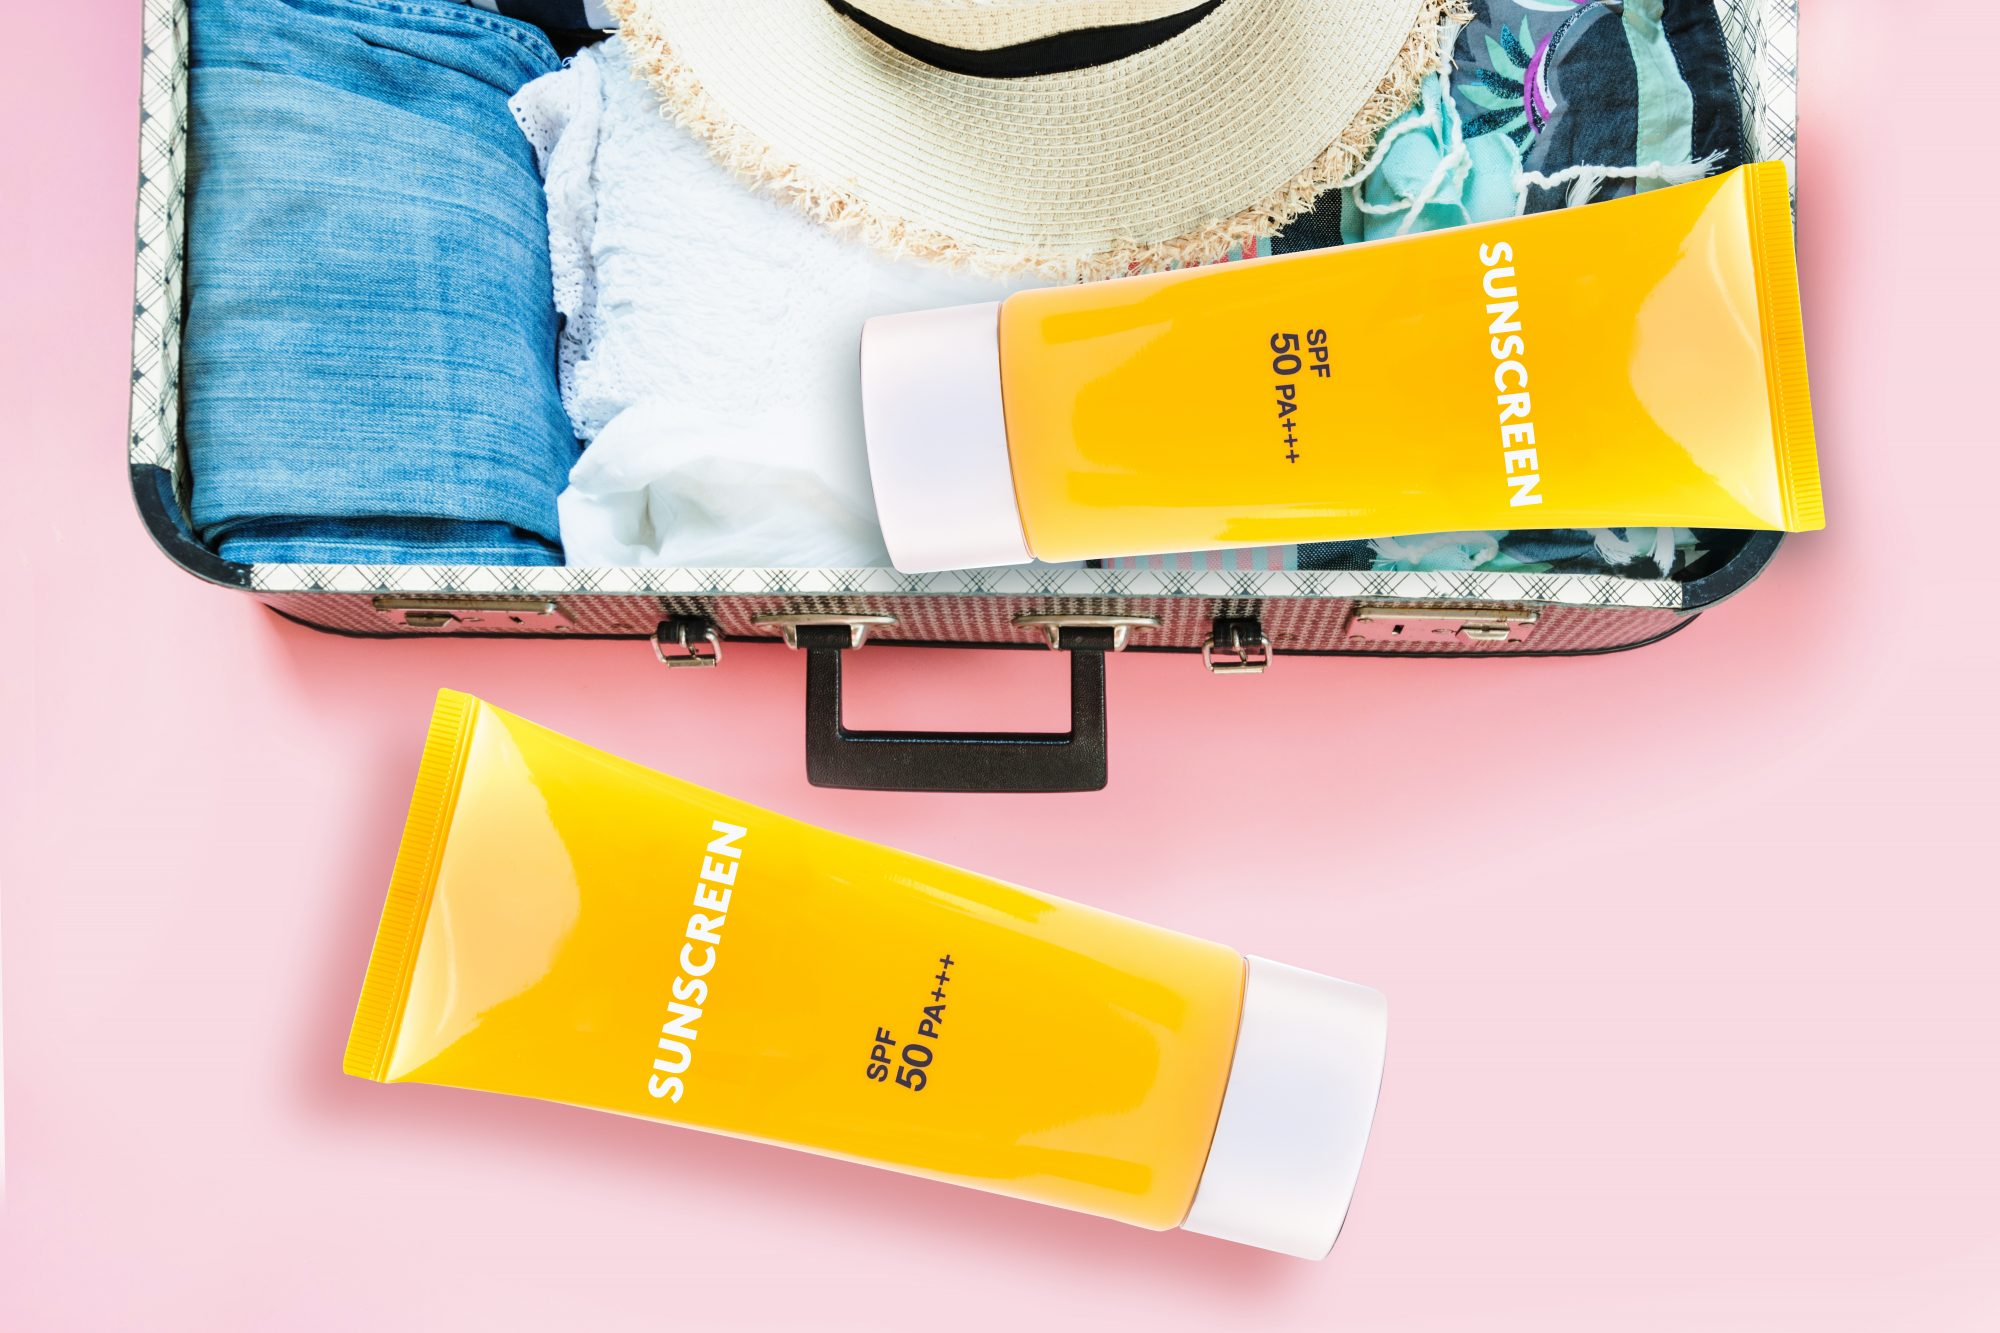 full-size-sunscreen-tsa-guidelines: sunscreen and carry-on luggage